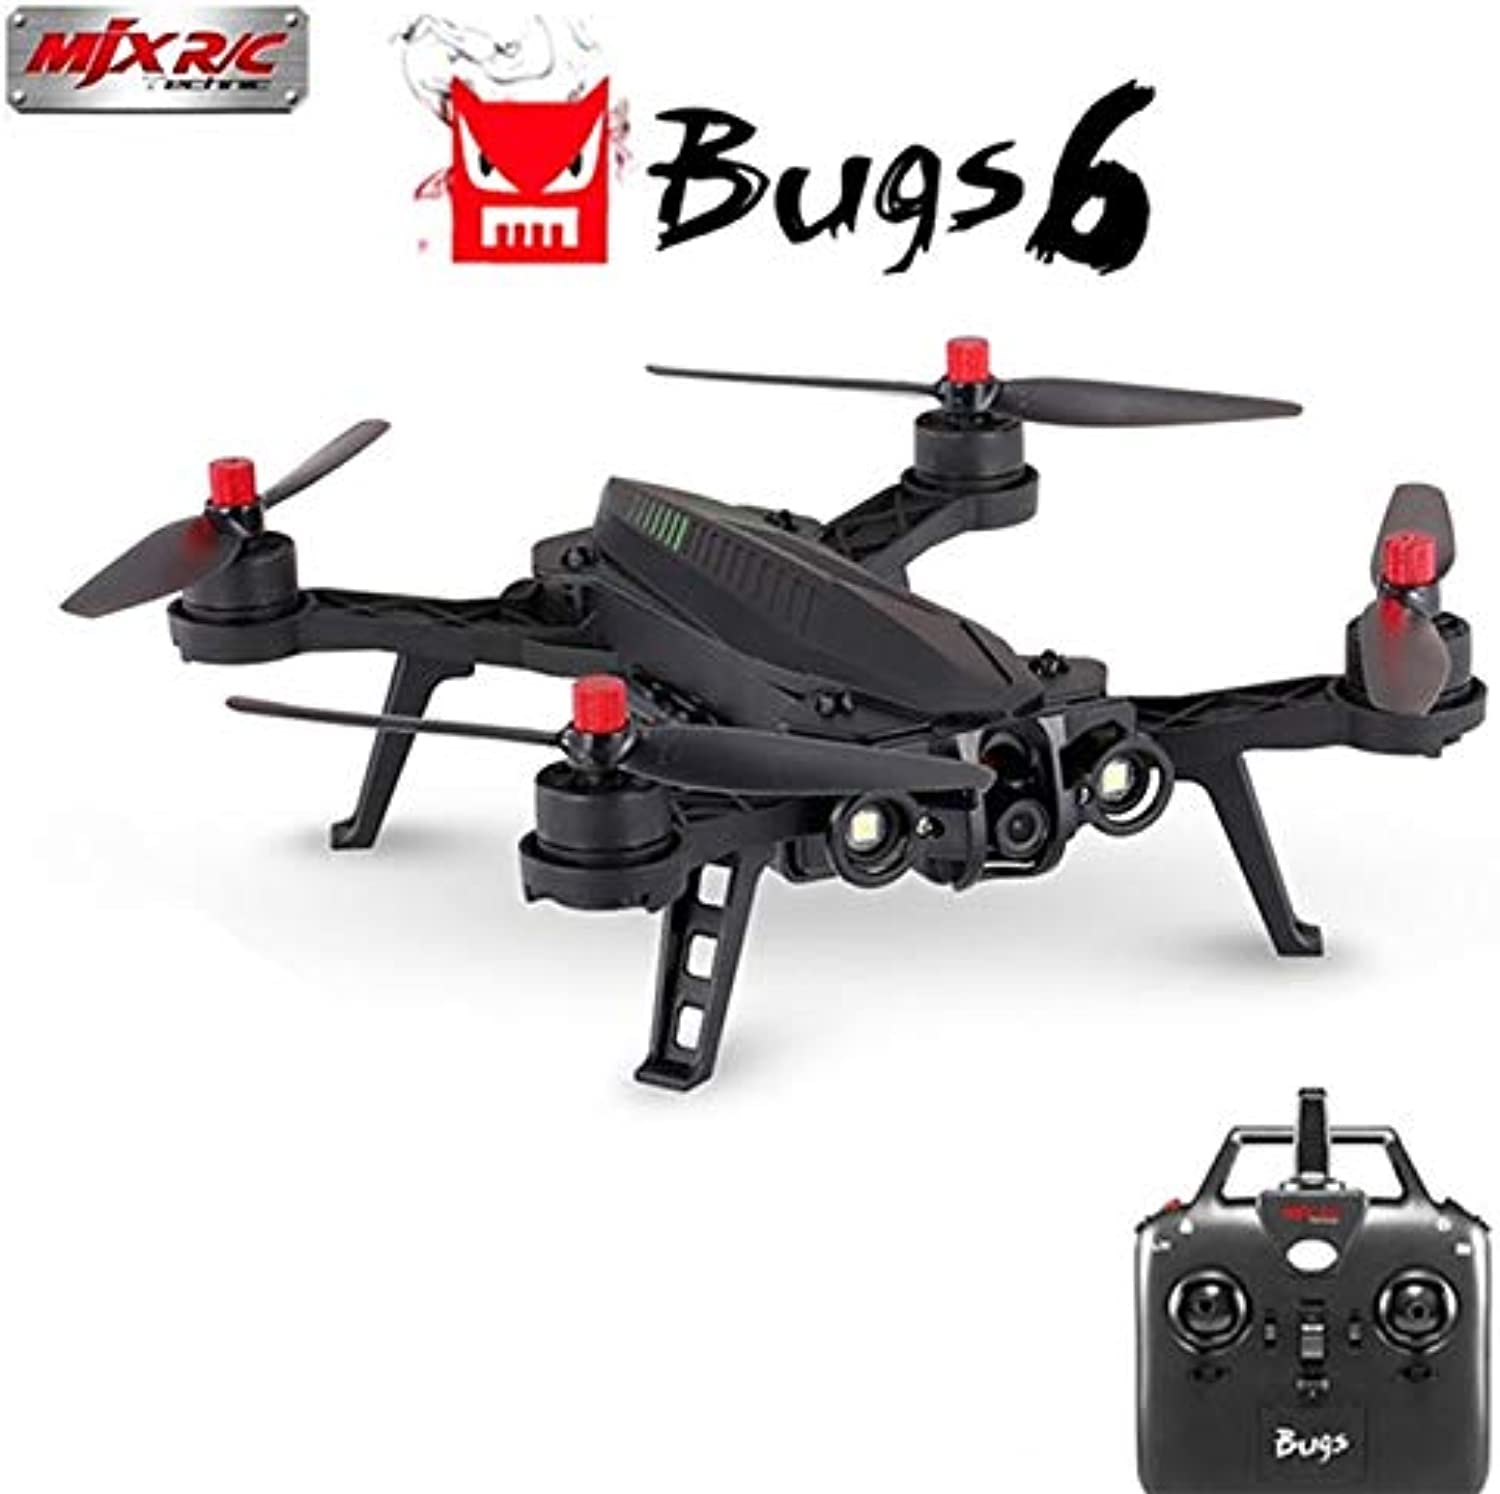 Studyset MJX Bugs 6 B6 RC Drone 2.4G Brushless Motor Racing Drone Quadcopter